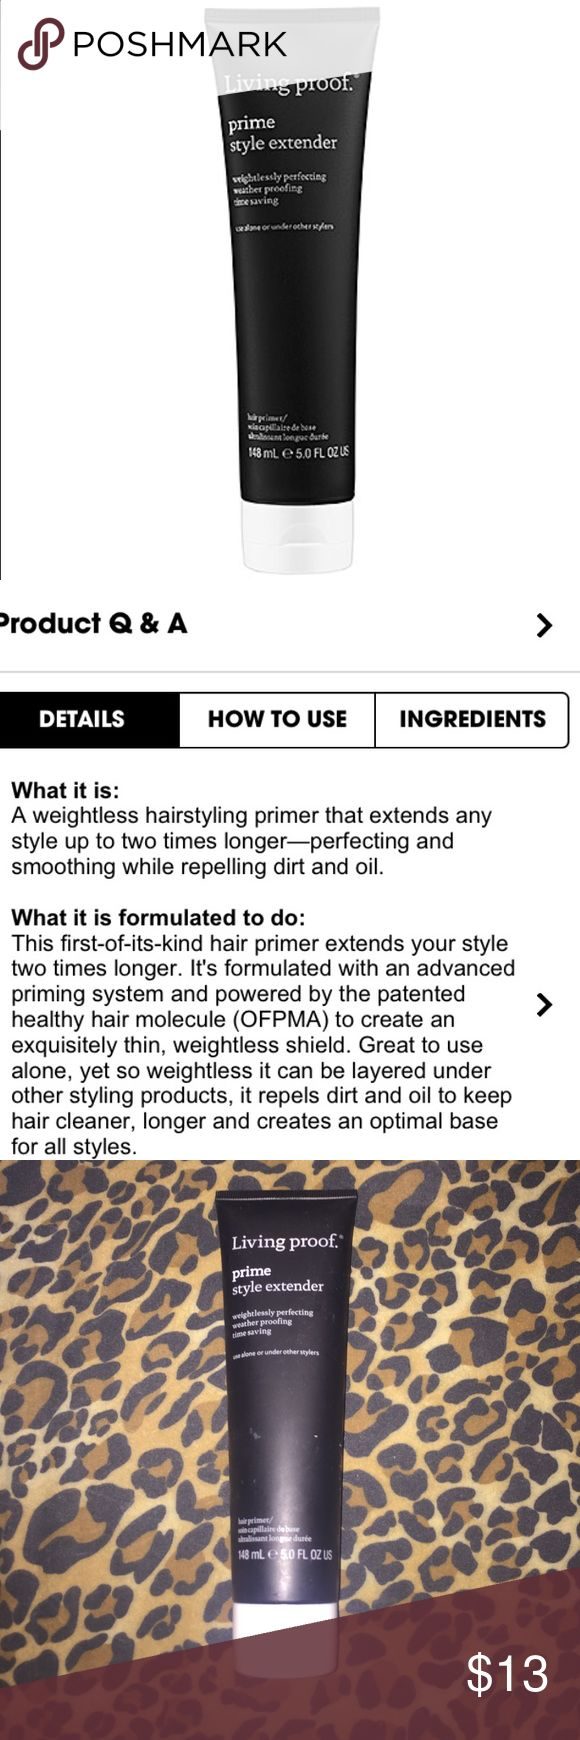 Living Proof Hair Primer BRAND NEW! Has my previous employee number etched. Feel free to ask any questions not stated in the description. I only ship 1-2 times a week; ask when before purchasing. 🚫No trades & only reasonable offers will be accepted via the offer button.🚫 Thank you for stopping by. 💕 Living Proof Makeup